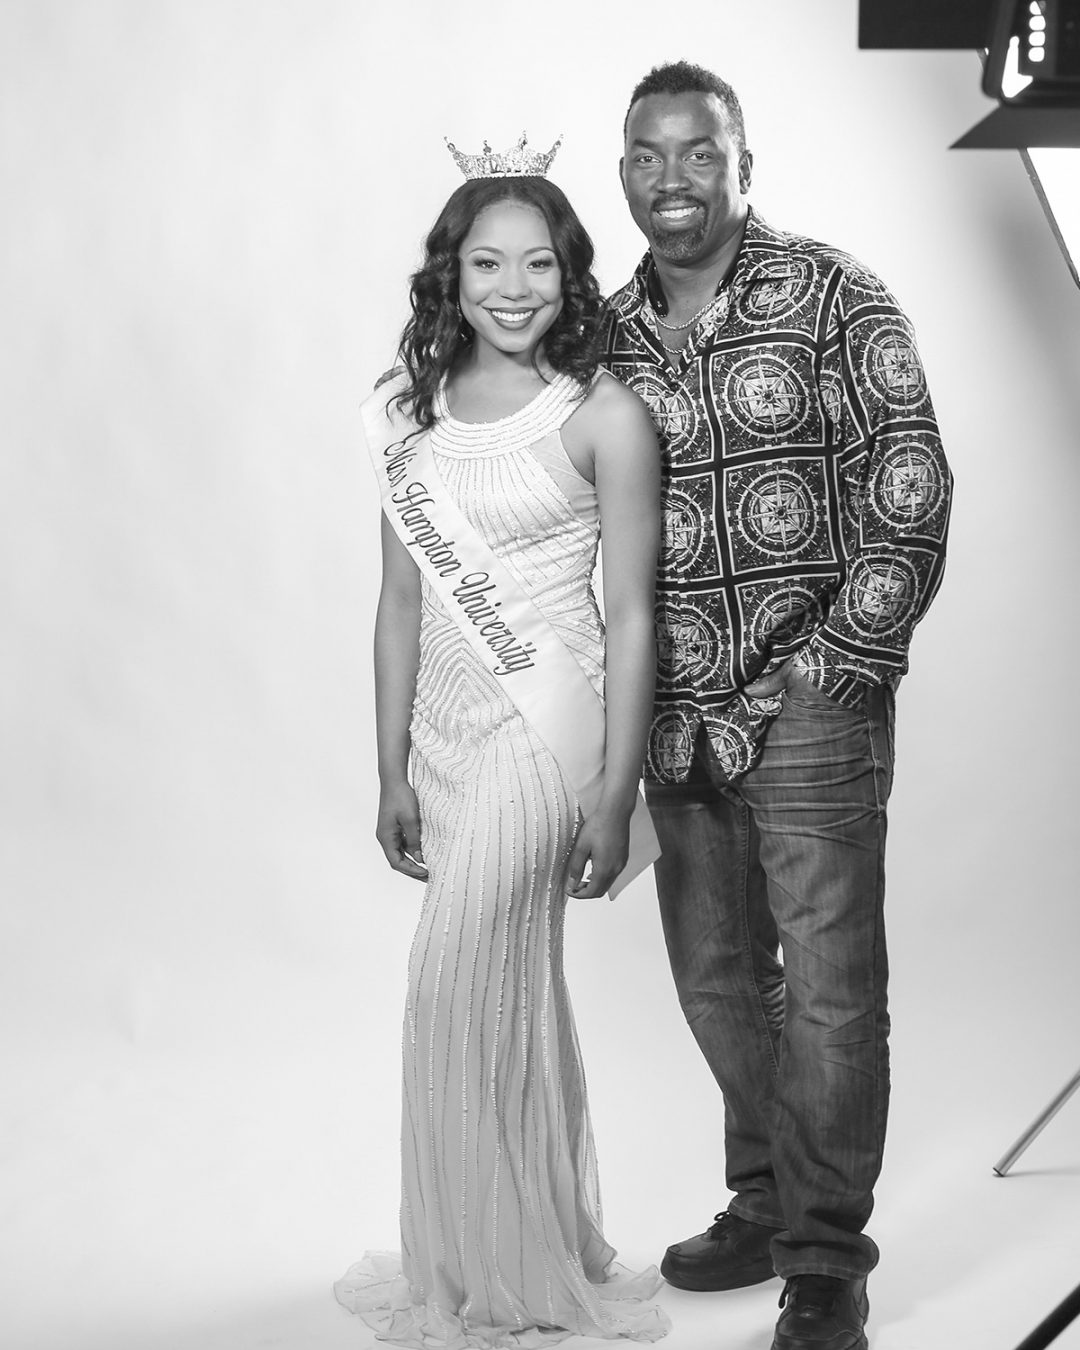 Virginia Pageant Photographer |  Sneak Preview:  Miss Hampton University, Brittany Harper